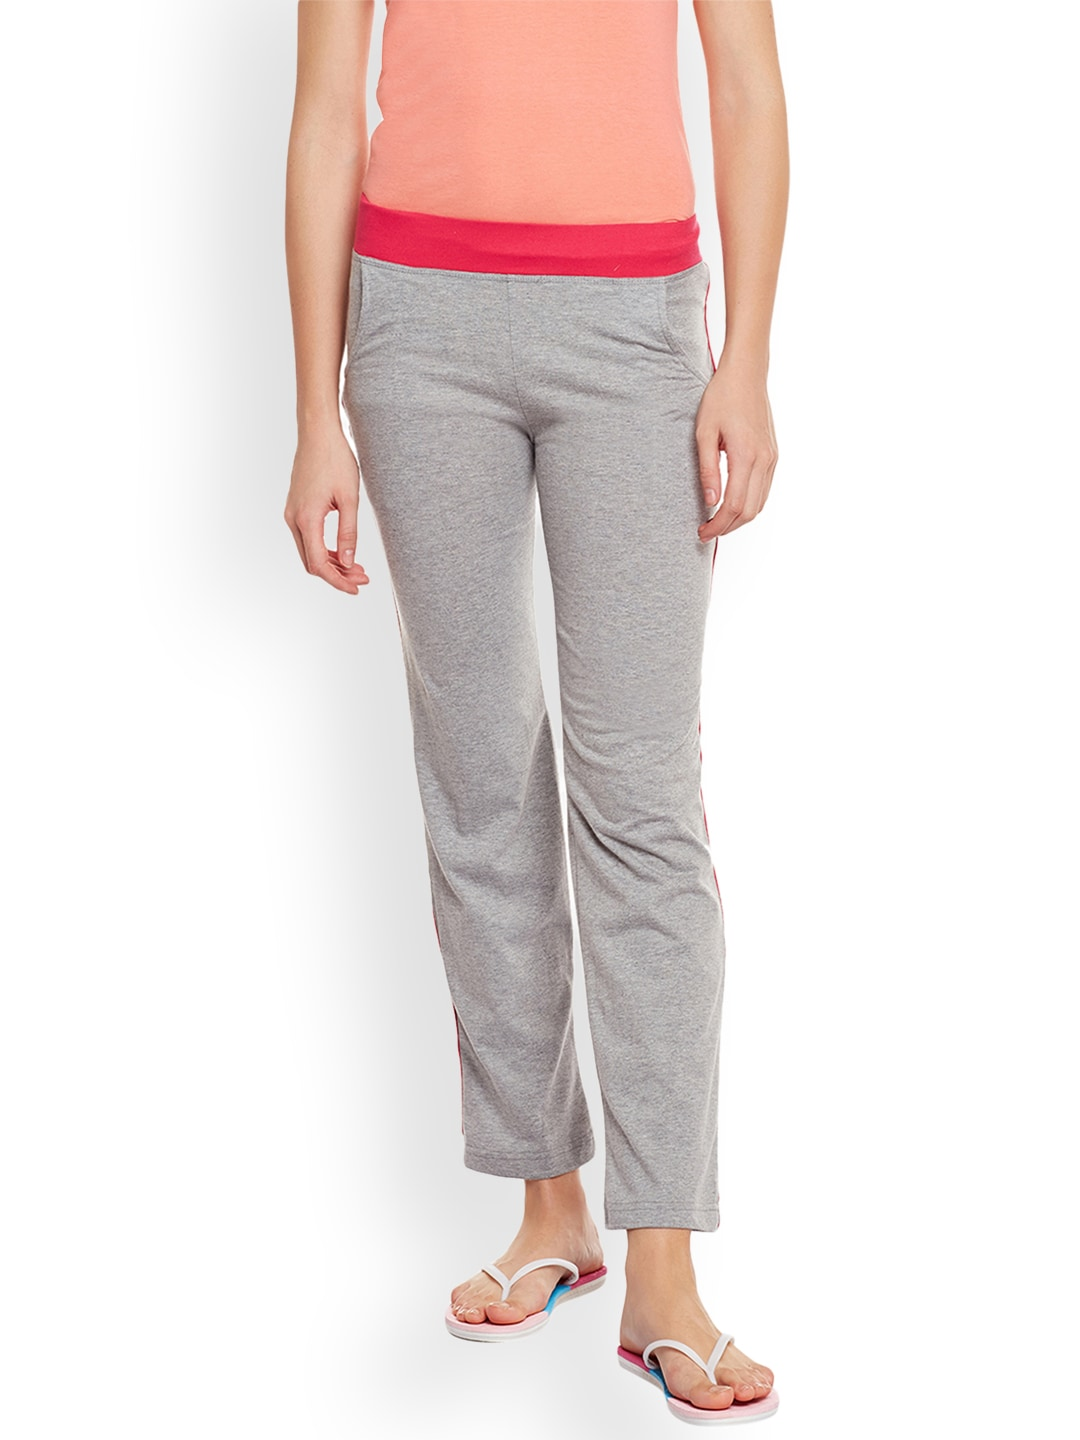 92125f95 Slim Wear Track Pants Pants - Buy Slim Wear Track Pants Pants online in  India